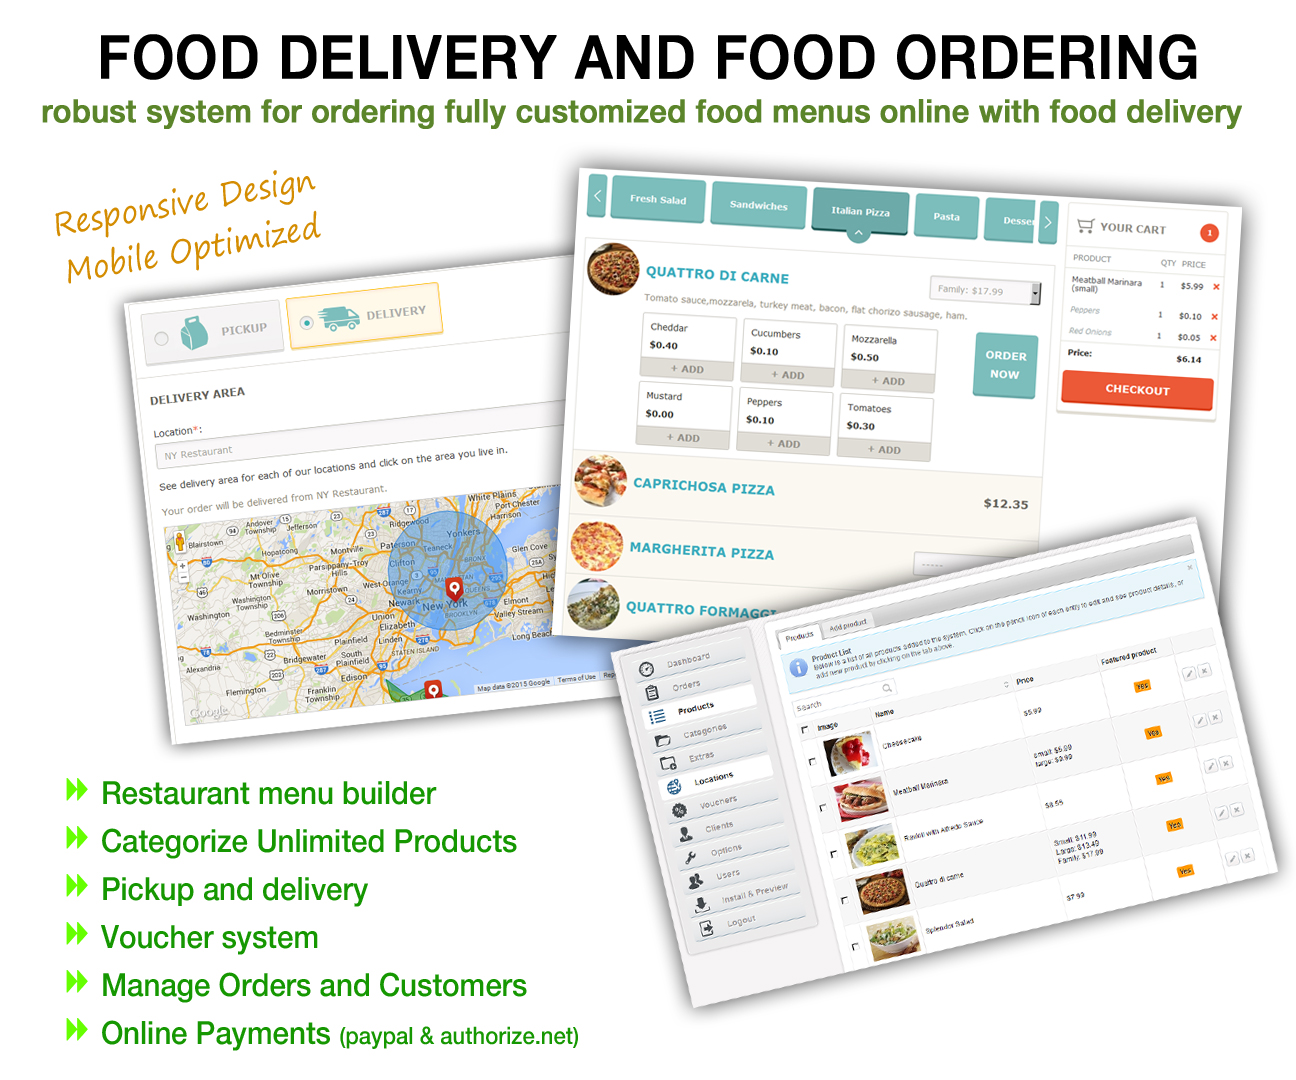 Online Food Menu Ordering and Food Delivery System